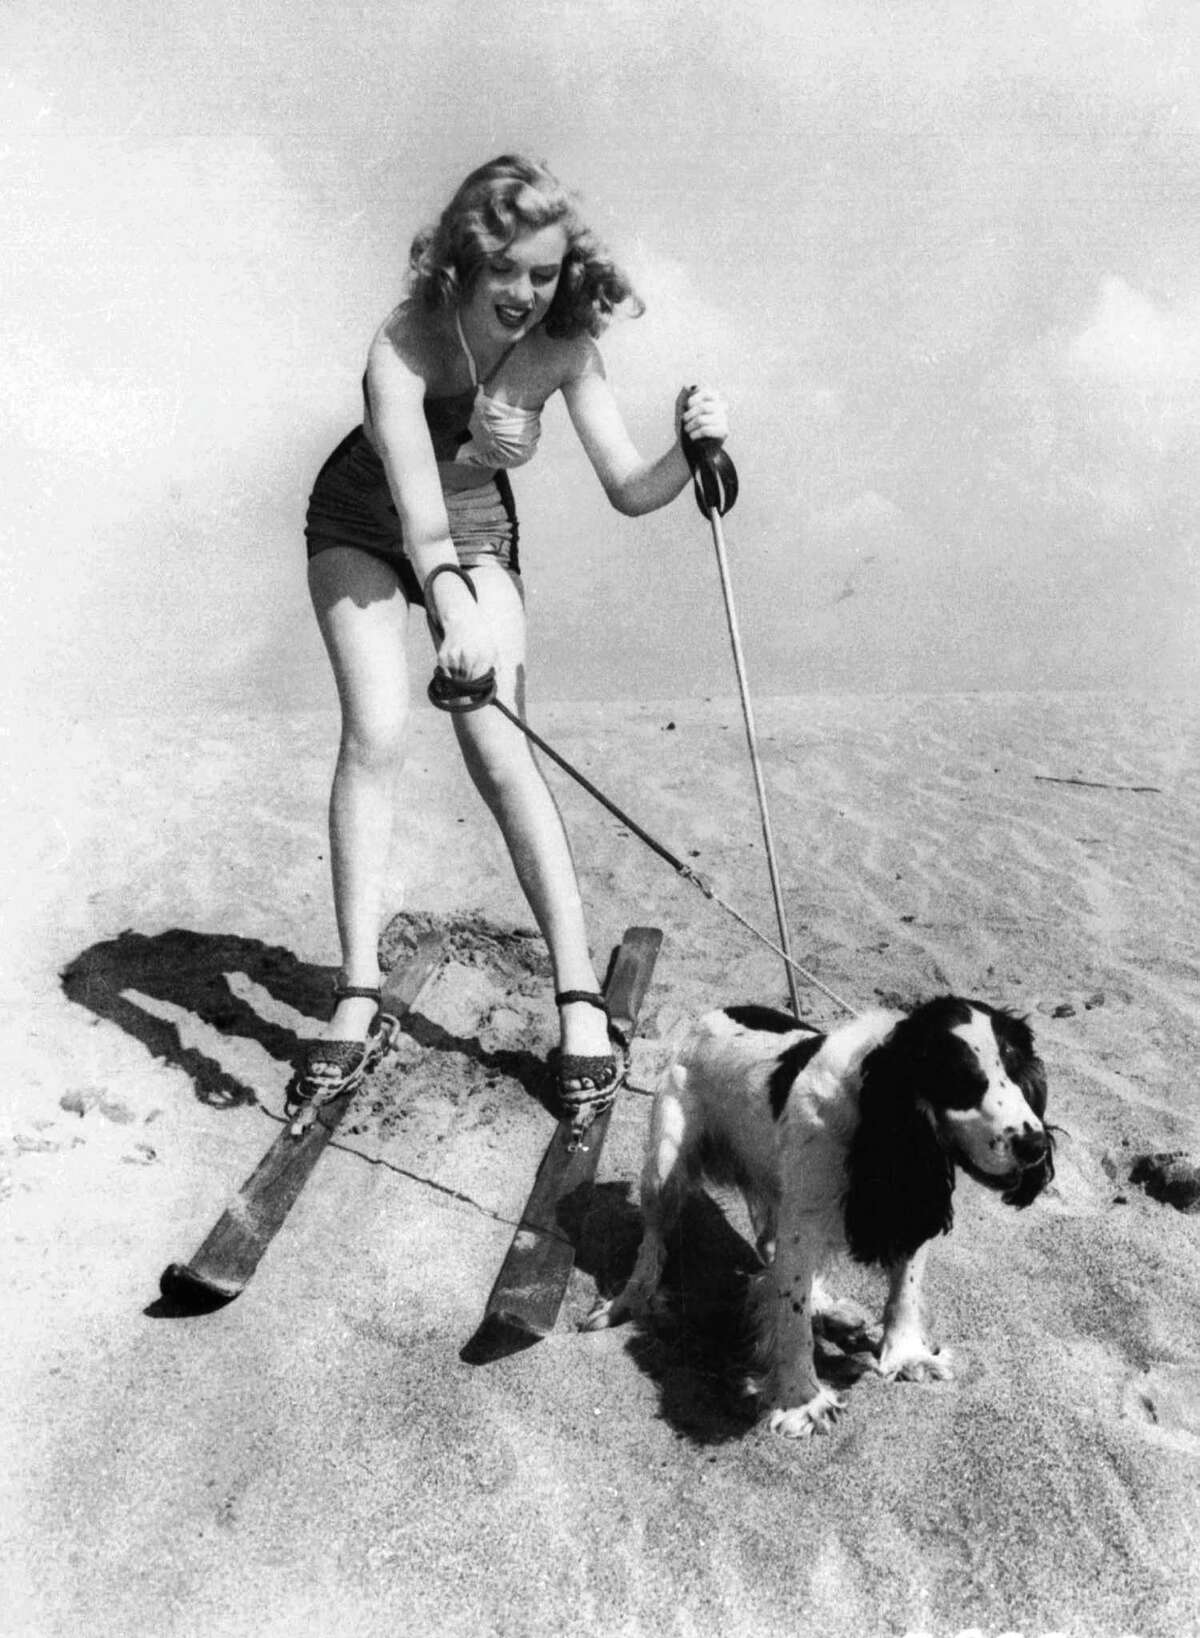 In this January 1, 1947 file photo, starlet Marilyn Monroe plays at the beach with her dog Ruffles.